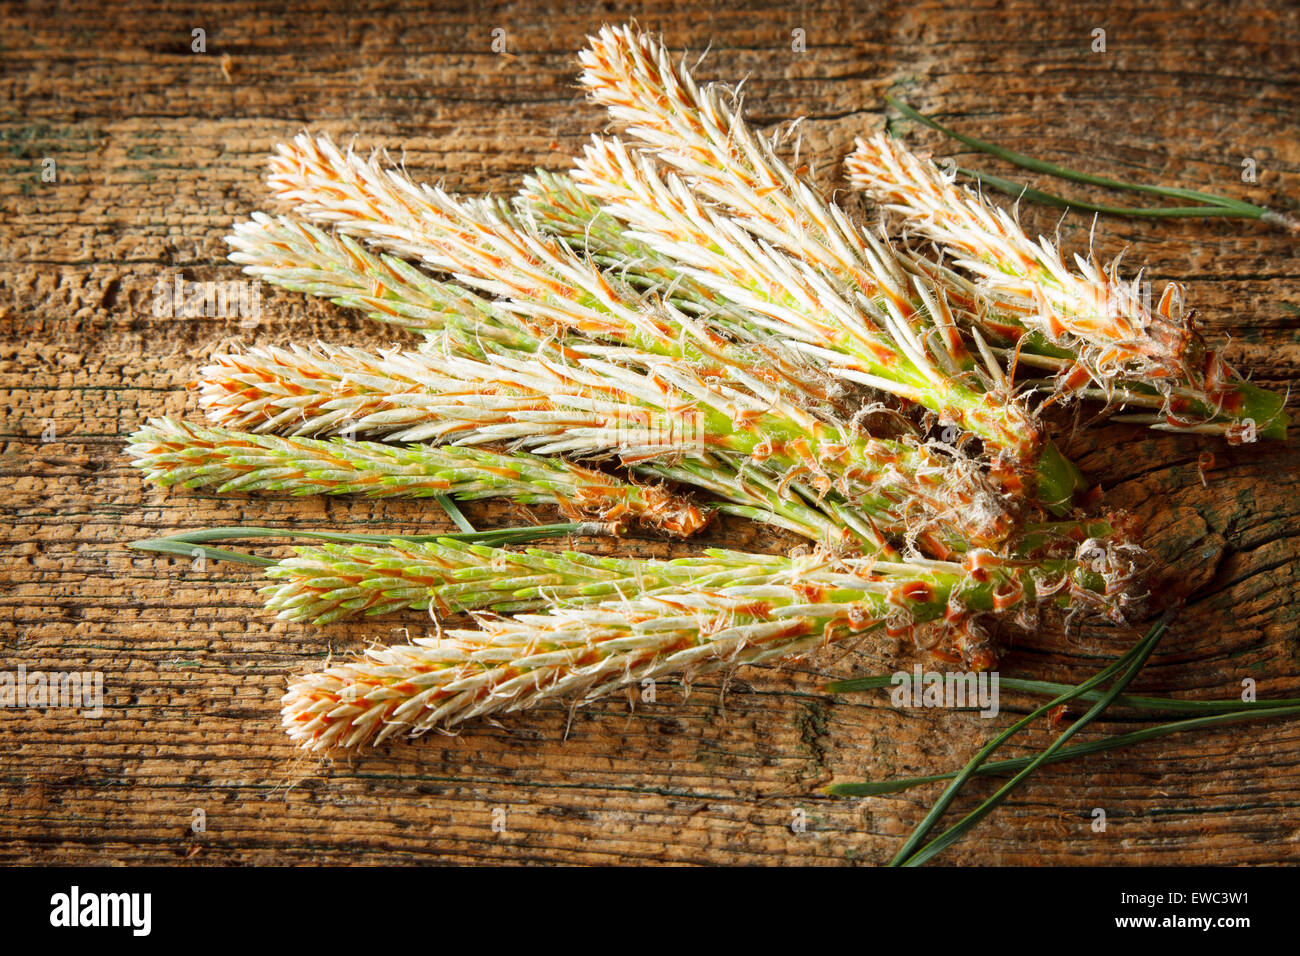 Pine buds on wooden table - Stock Image